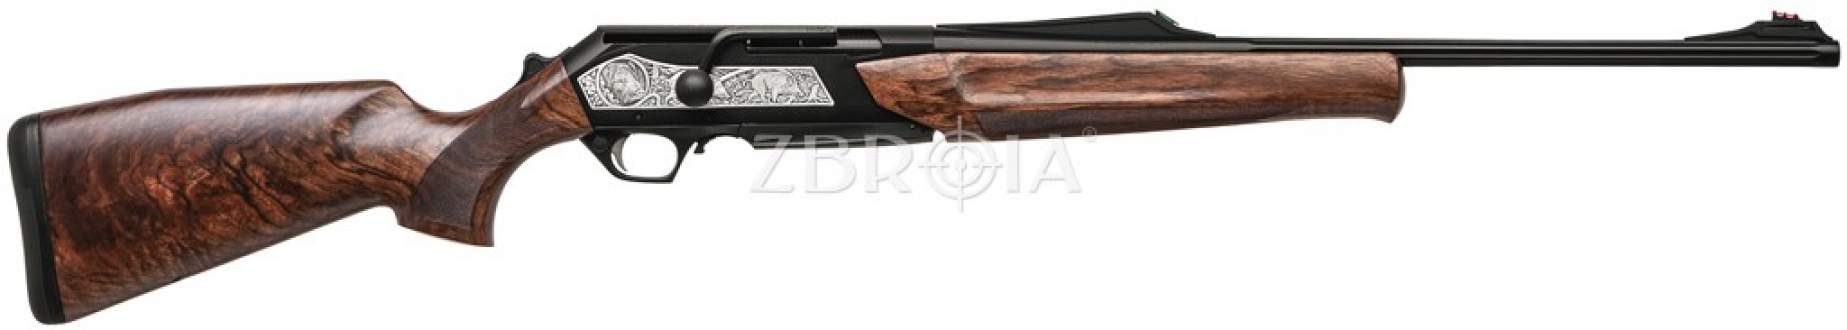 Карабин Browning Maral SF Big Game Fluted HC кал. 308 Win